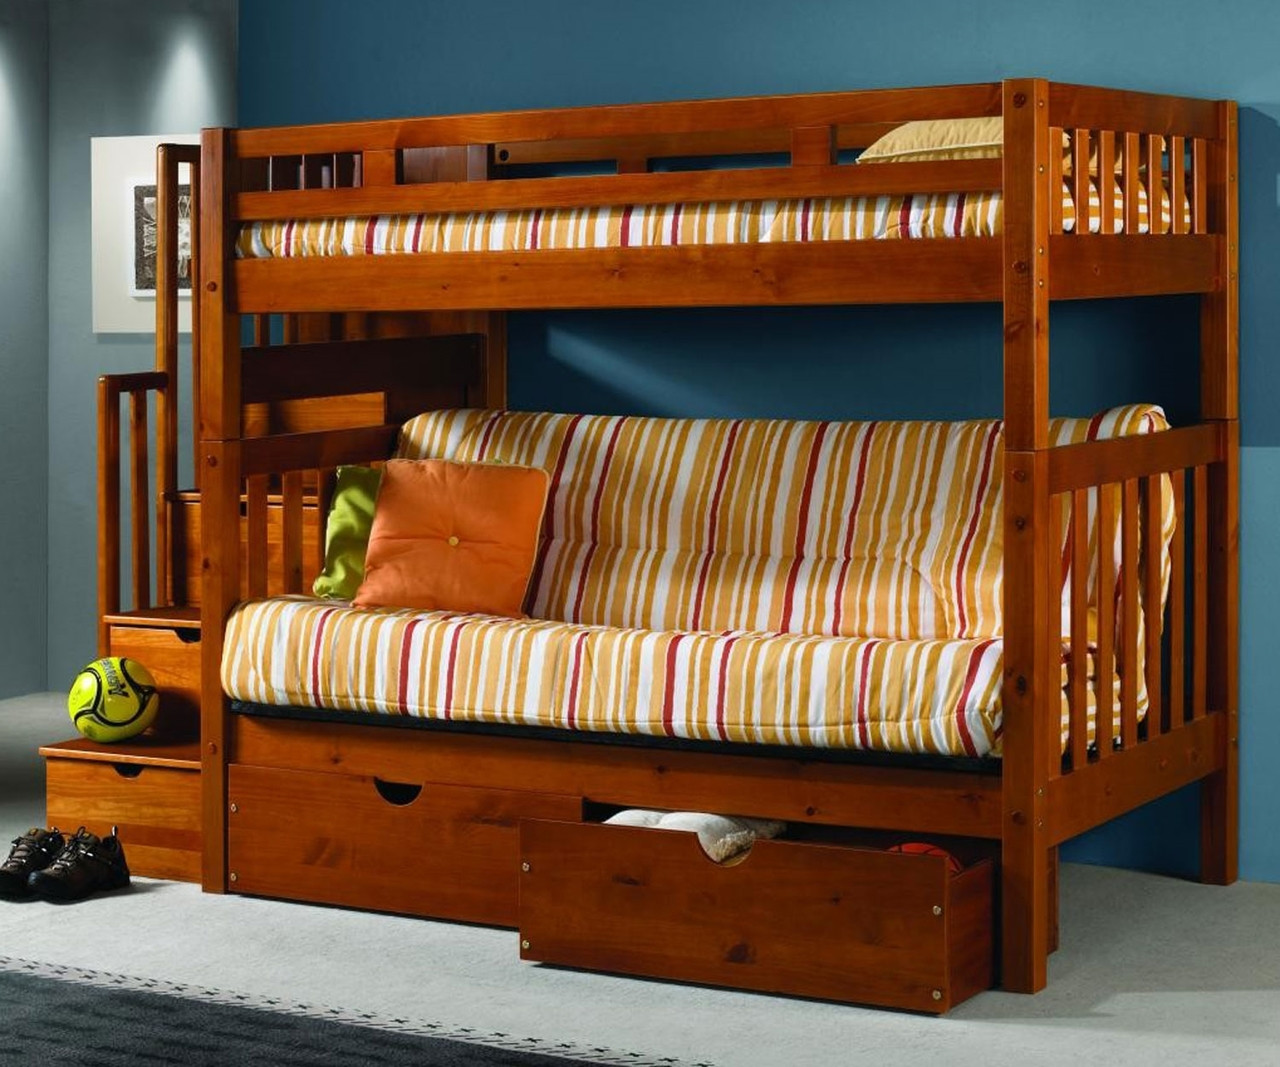 Donco Trading Mission Stairway Futon Bunk Bed 200 Abcdefgh 300 Solid Wood Bunk Bed Donco Furniture